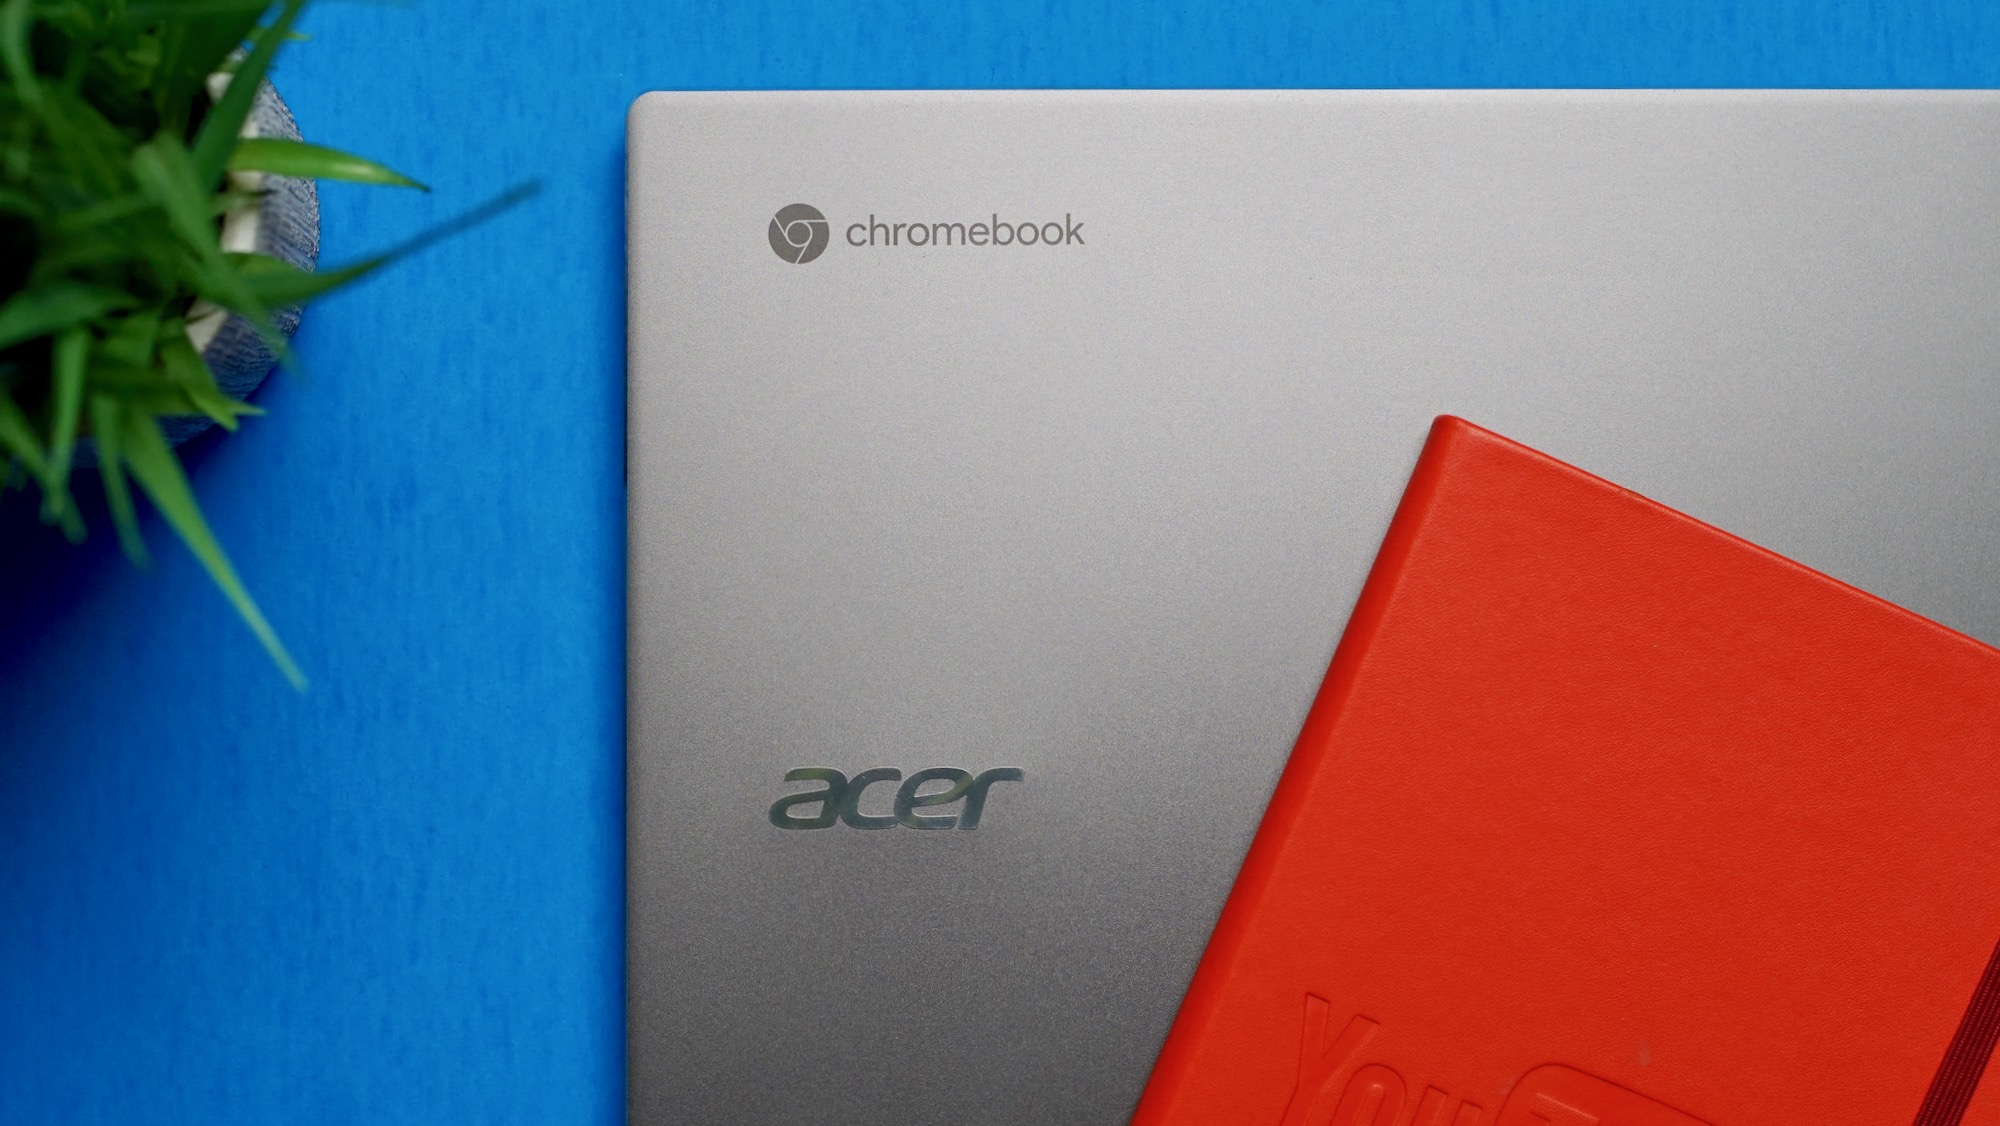 The excellent new Acer Chromebook Spin 713 can be purchased right now